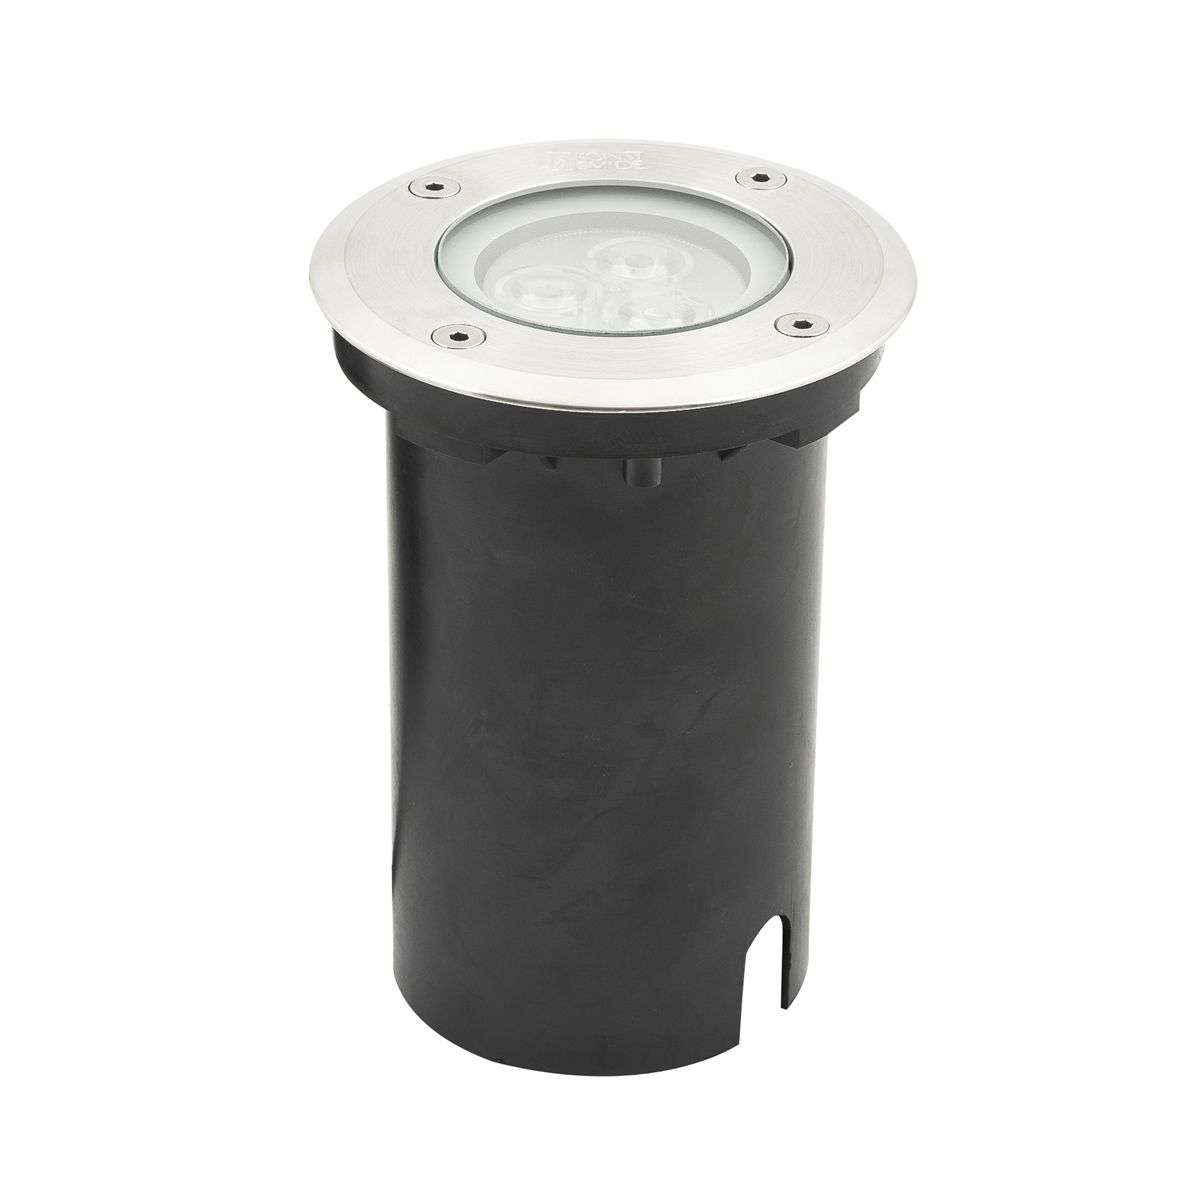 Ronde NEW HIGH POWER LED grondspot IP65-5522419-31